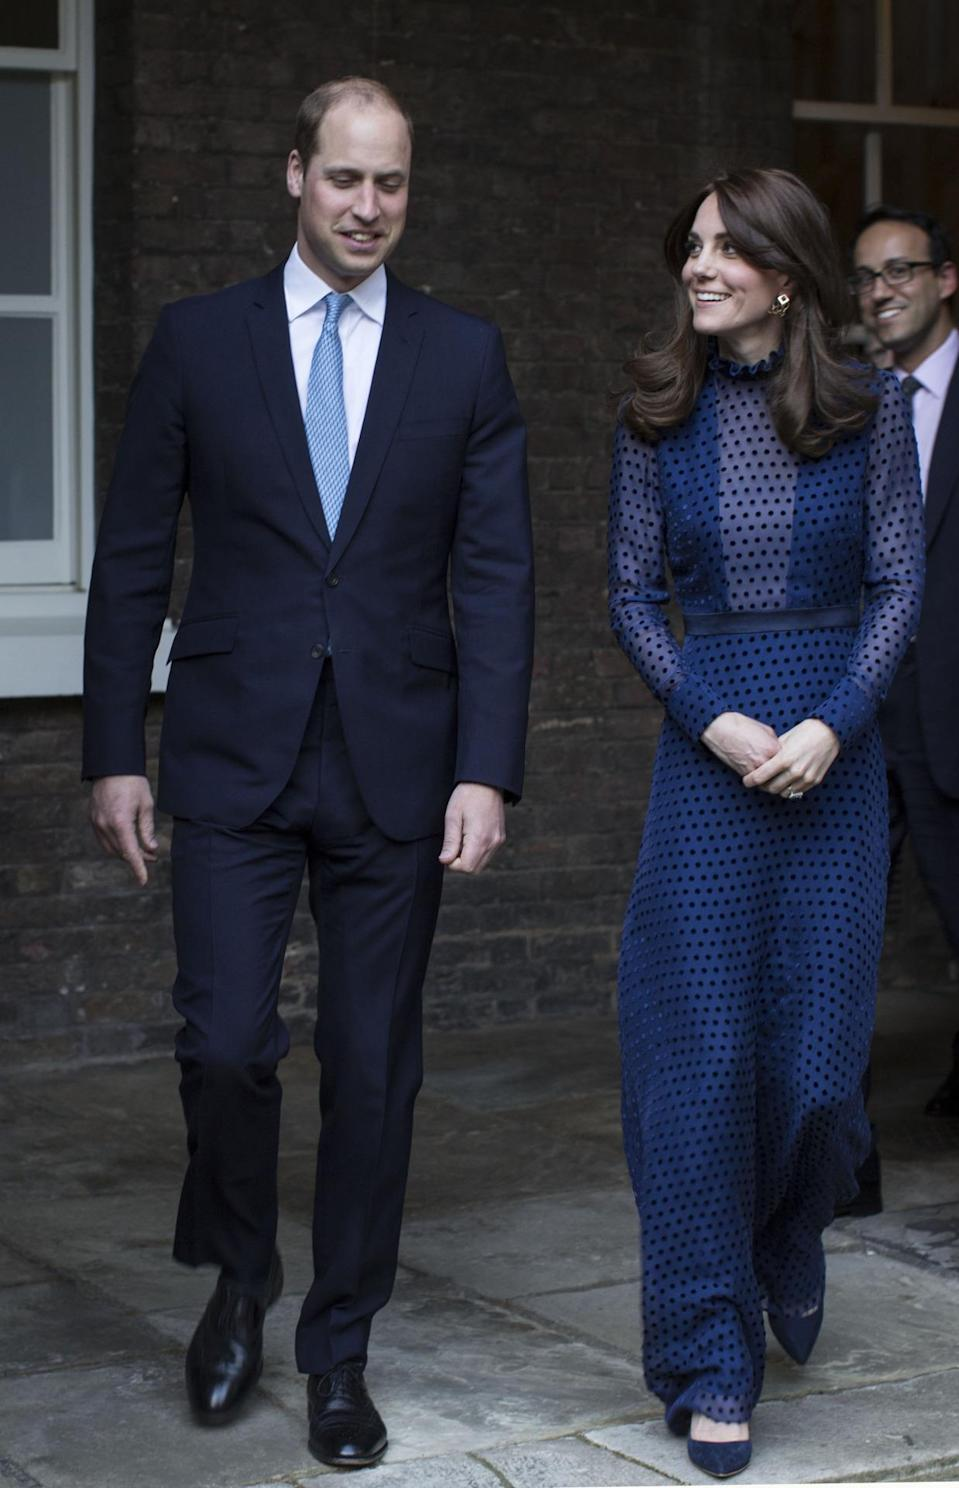 <p>Opting for a navy polka dot gown by Saloni, Kate attended a reception at Kensington Palace. Simple Rupert Sanderson heels finished the look. </p><p><i>[Photo: PA]</i></p>